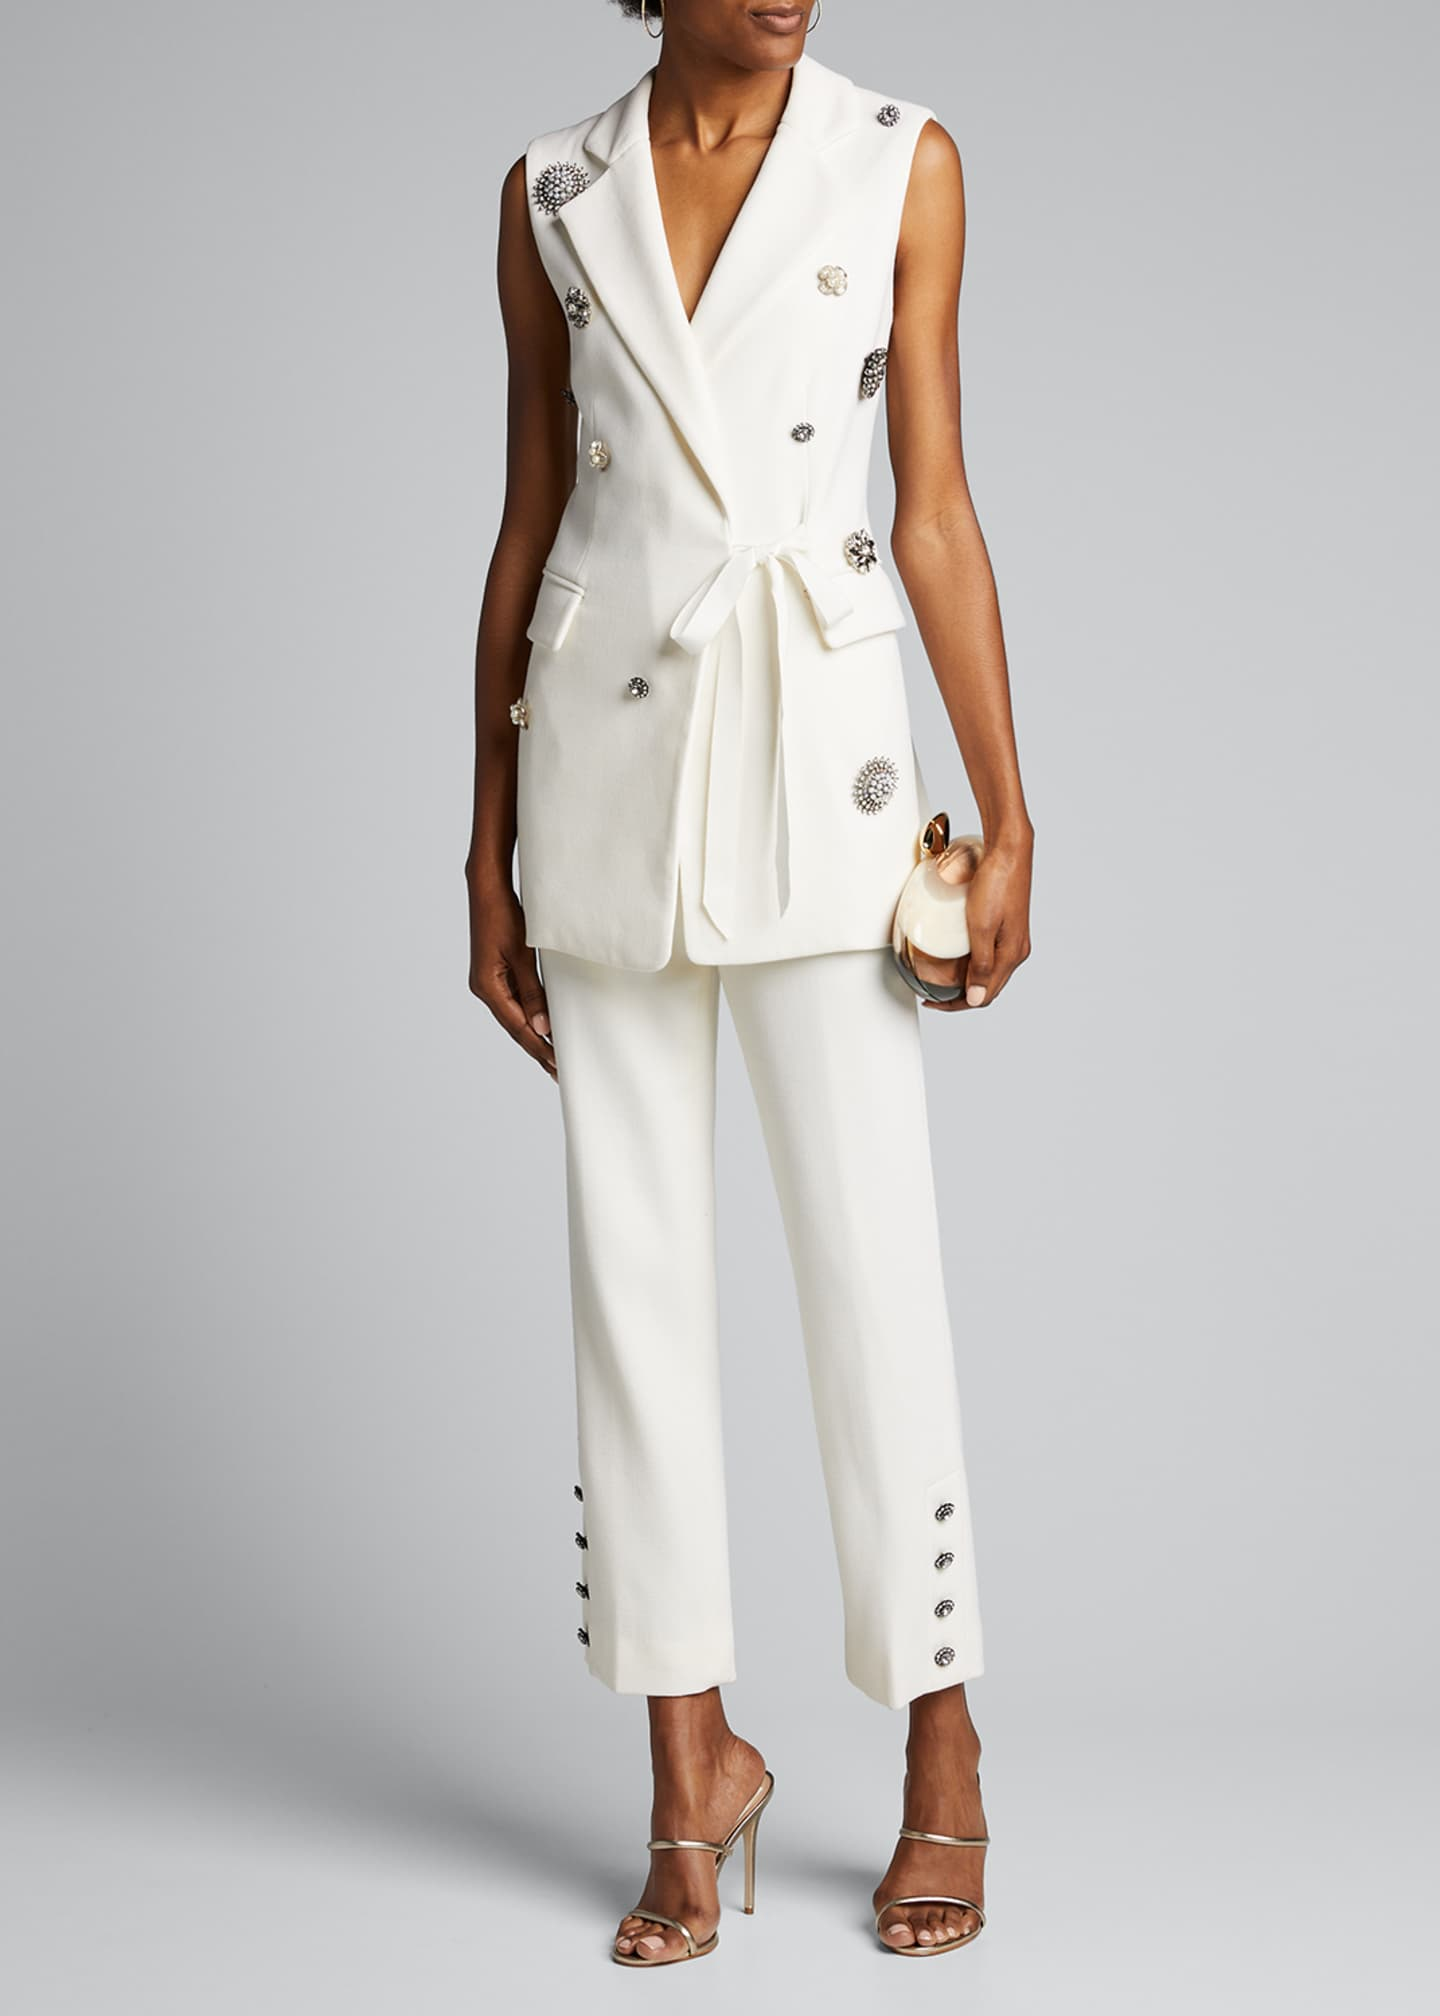 Lela Rose Crystal Button Crepe Wrap Vest